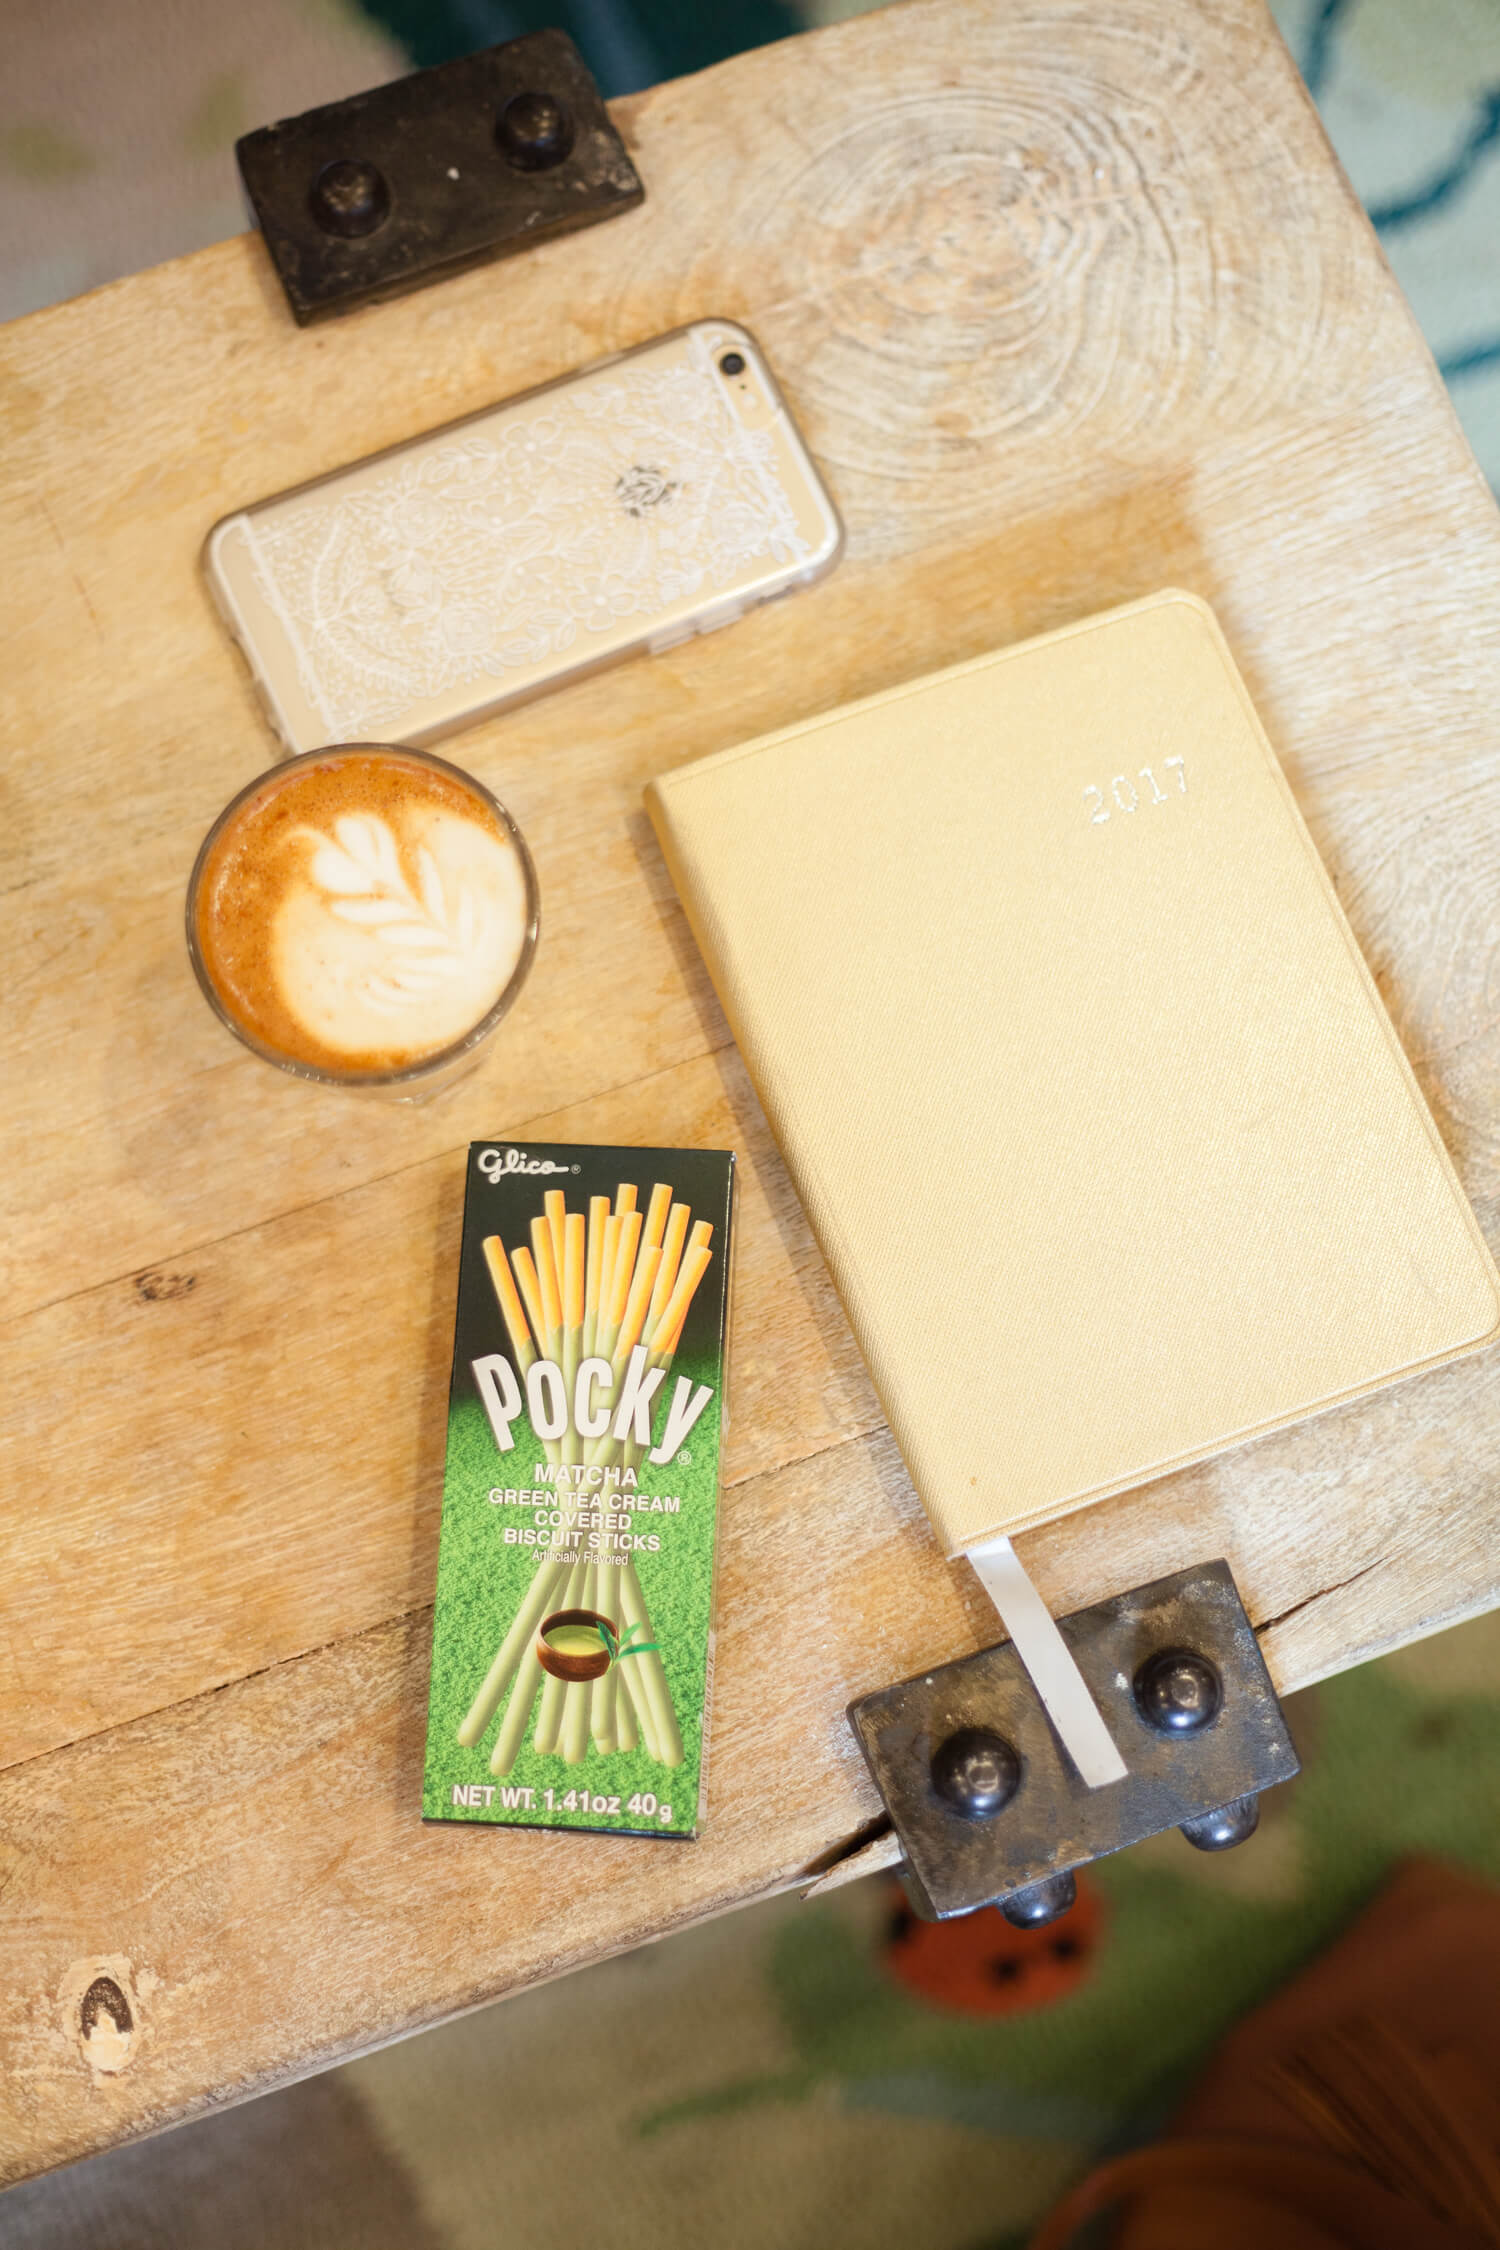 Pocky and Coffee Pairing Idea: Matcha and a Cortado